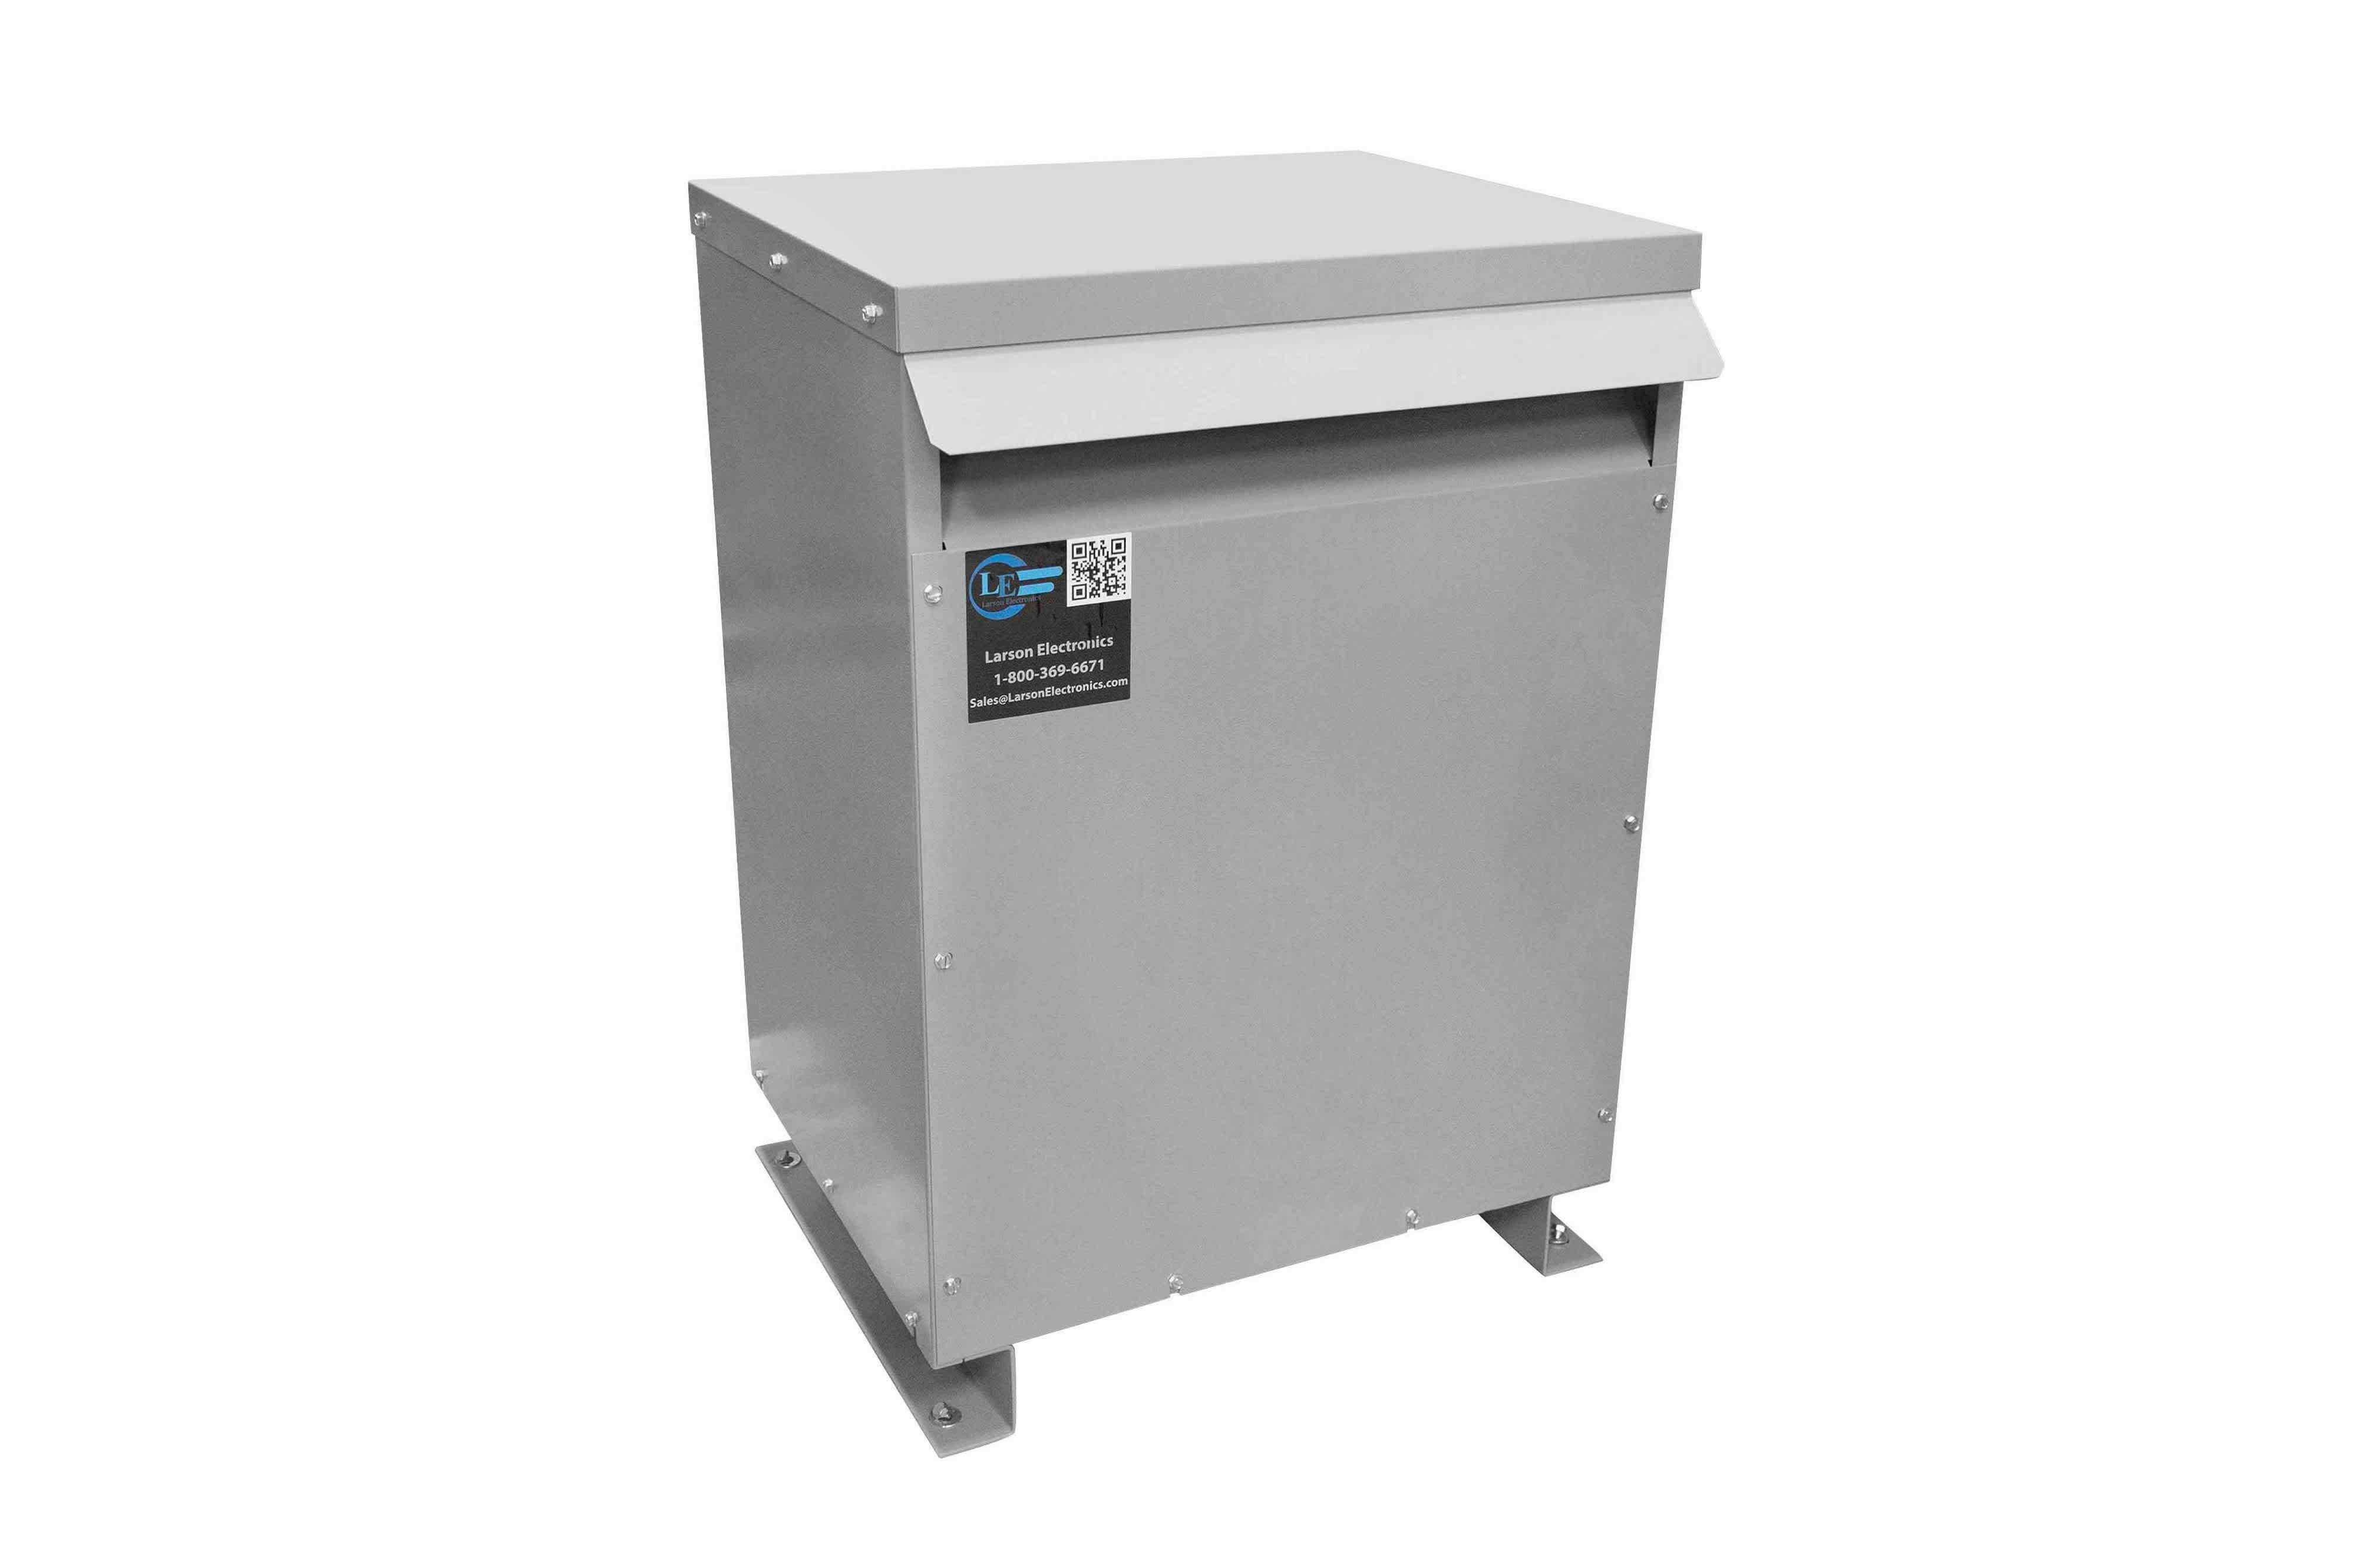 42.5 kVA 3PH Isolation Transformer, 208V Delta Primary, 415V Delta Secondary, N3R, Ventilated, 60 Hz